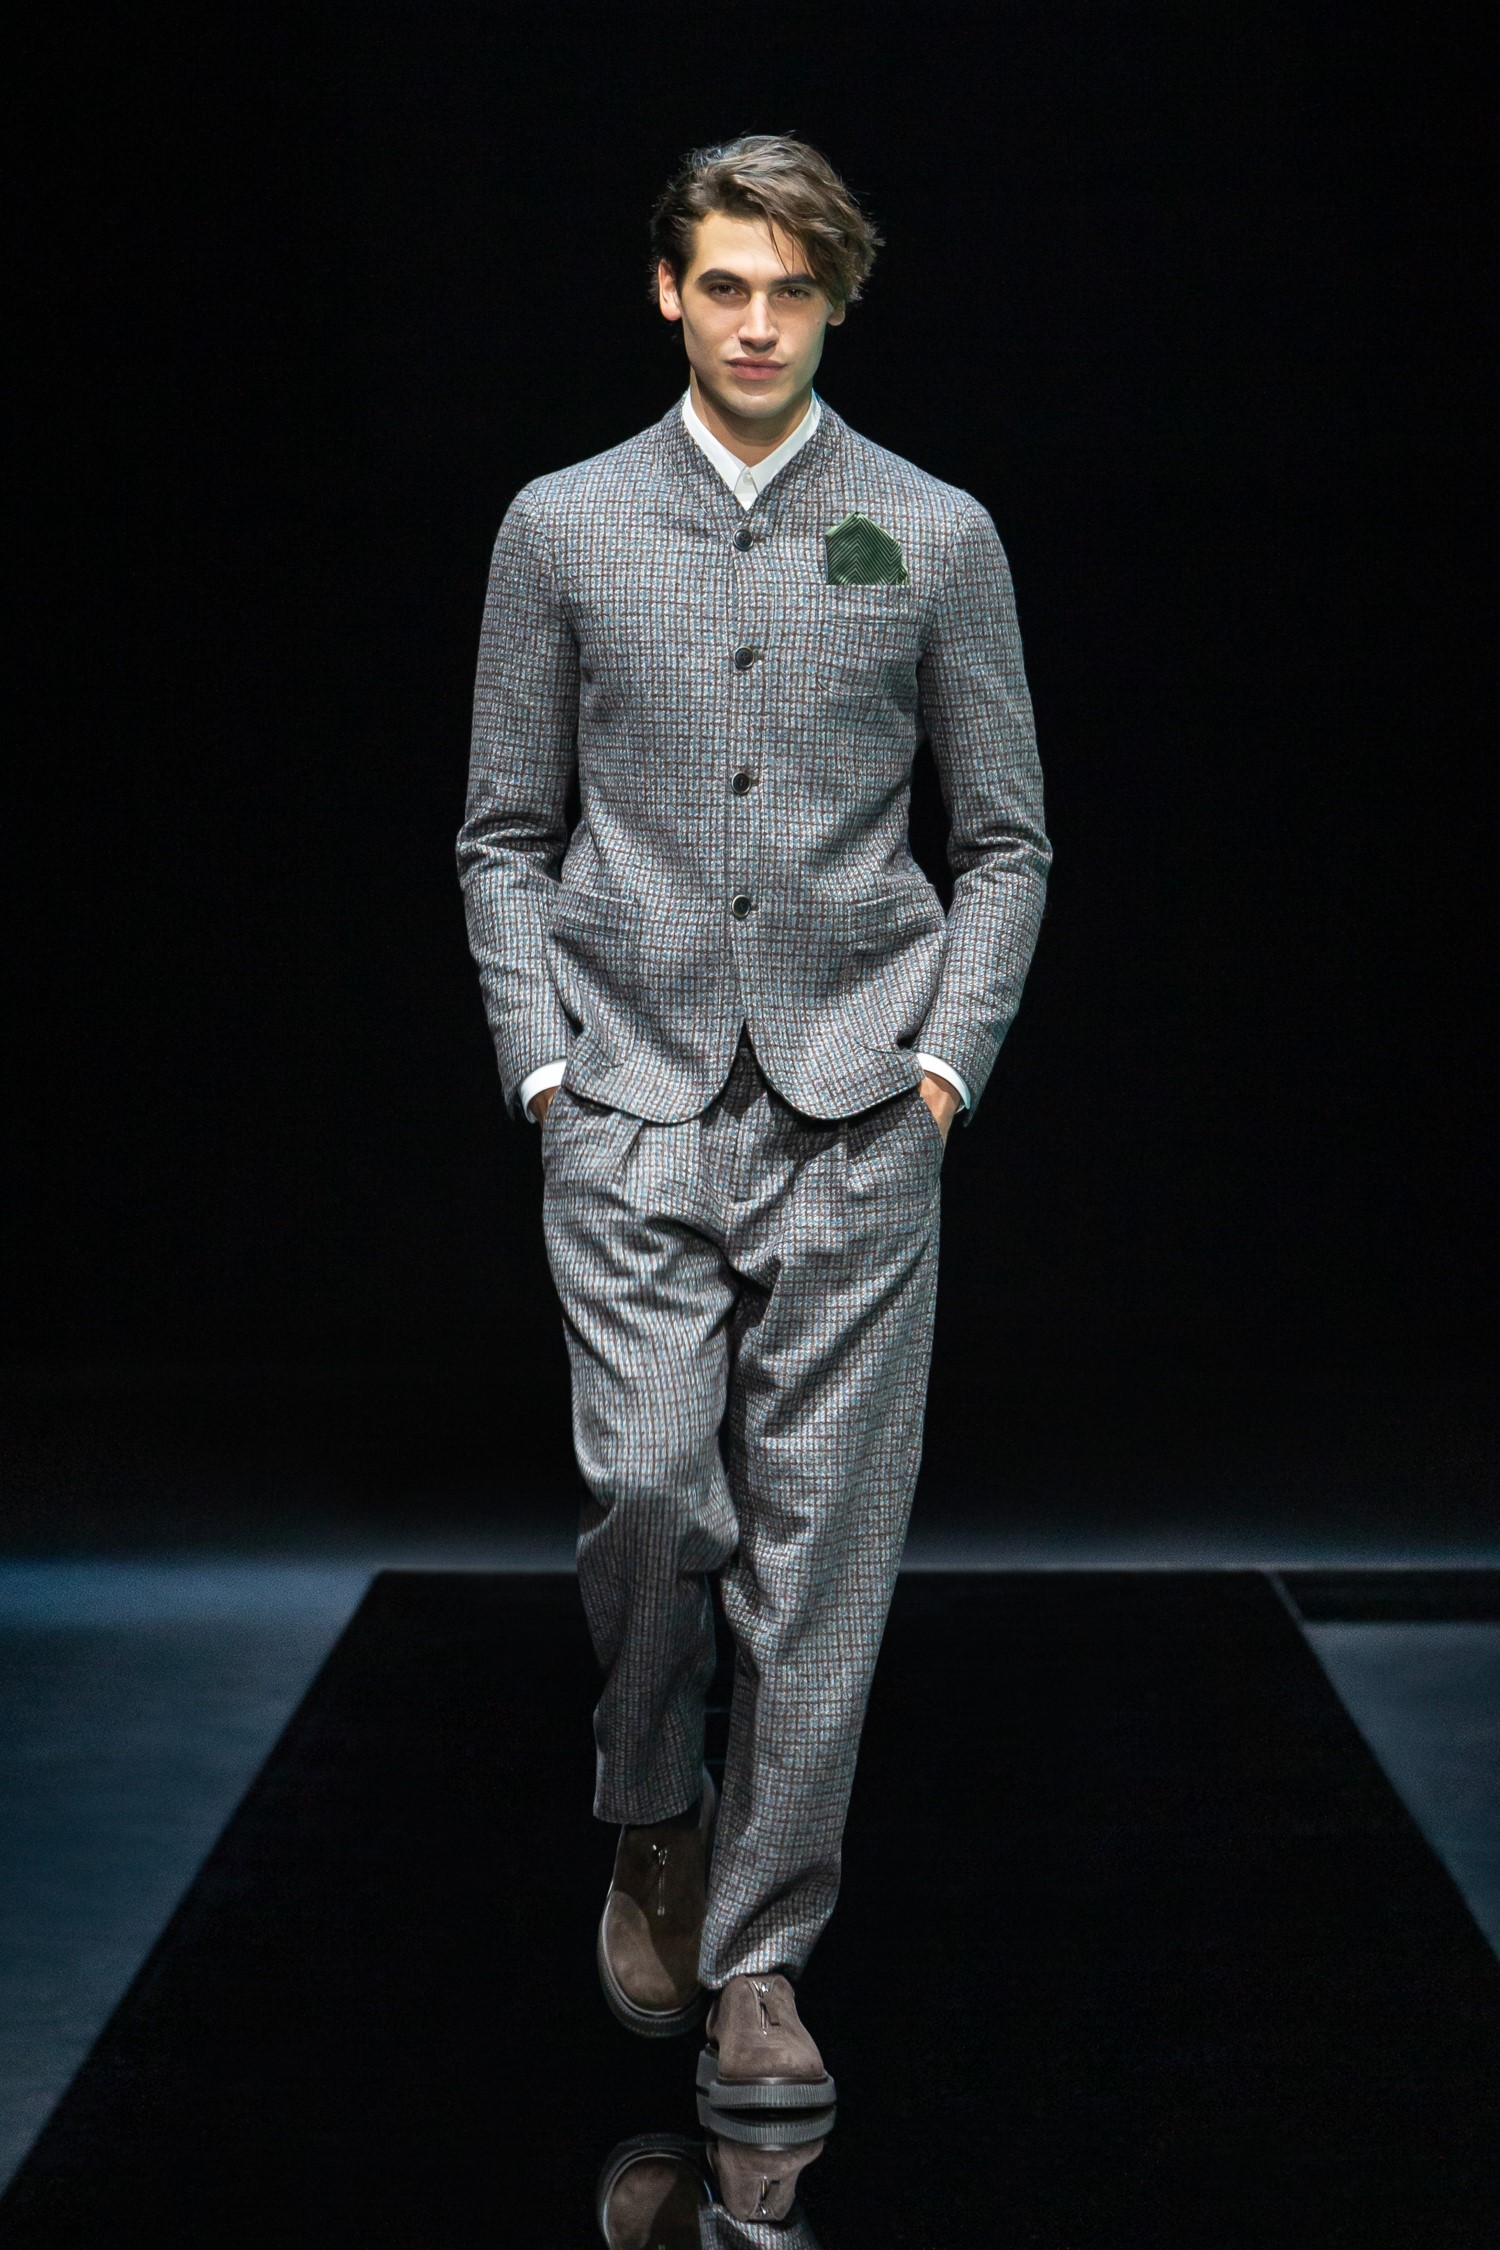 Giorgio Armani Men's Fall Winter 2021 - Milan Fashion Week